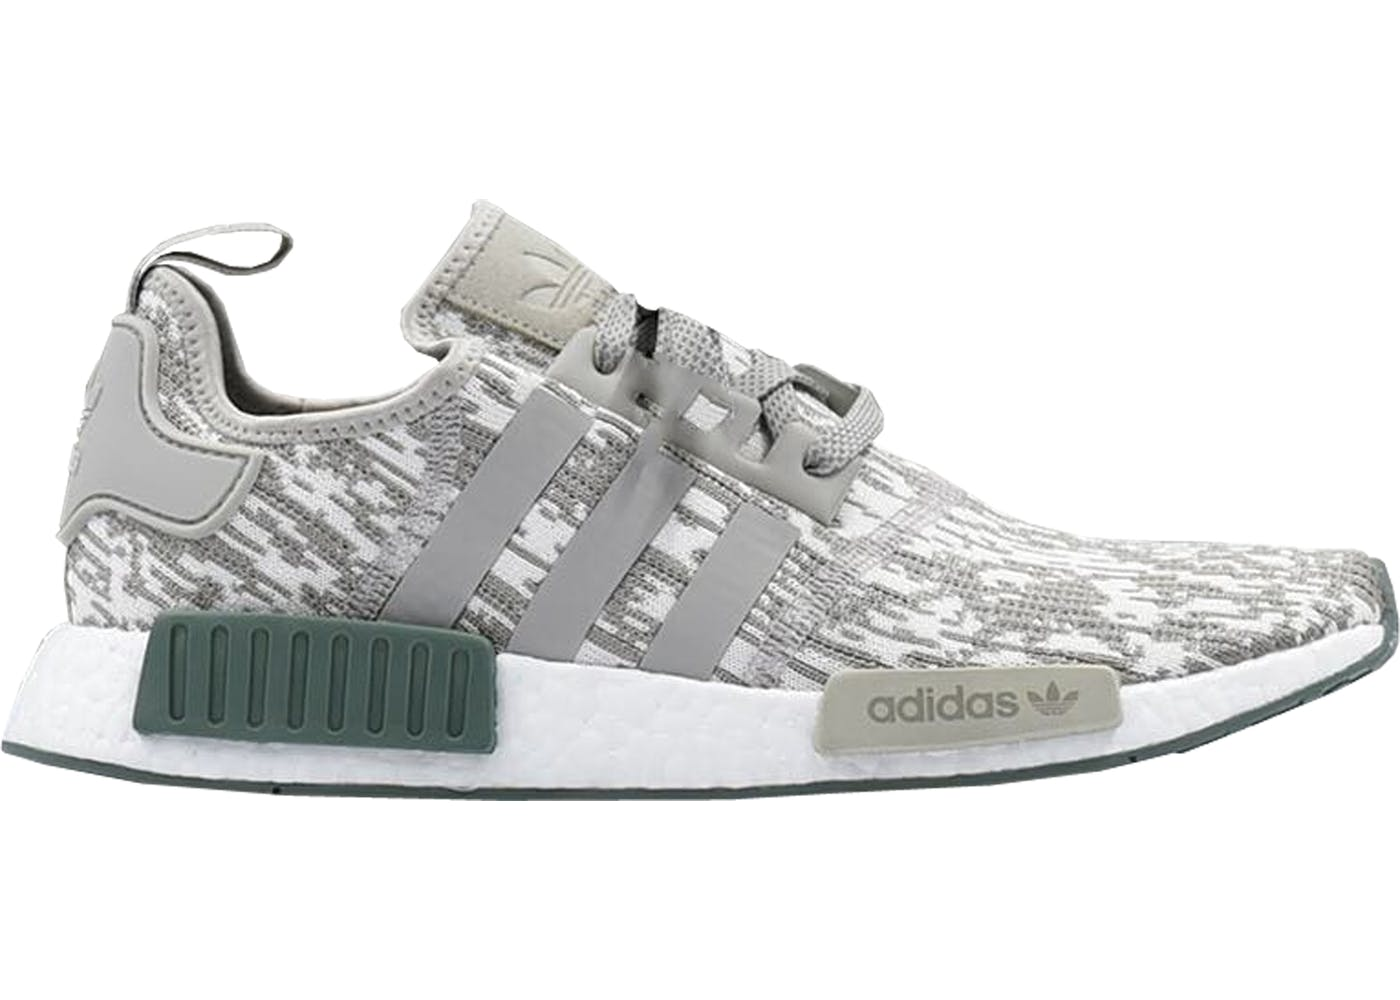 Adidas NMD R1 Three Stripes White Noise Pack Sz 8 S76518 White